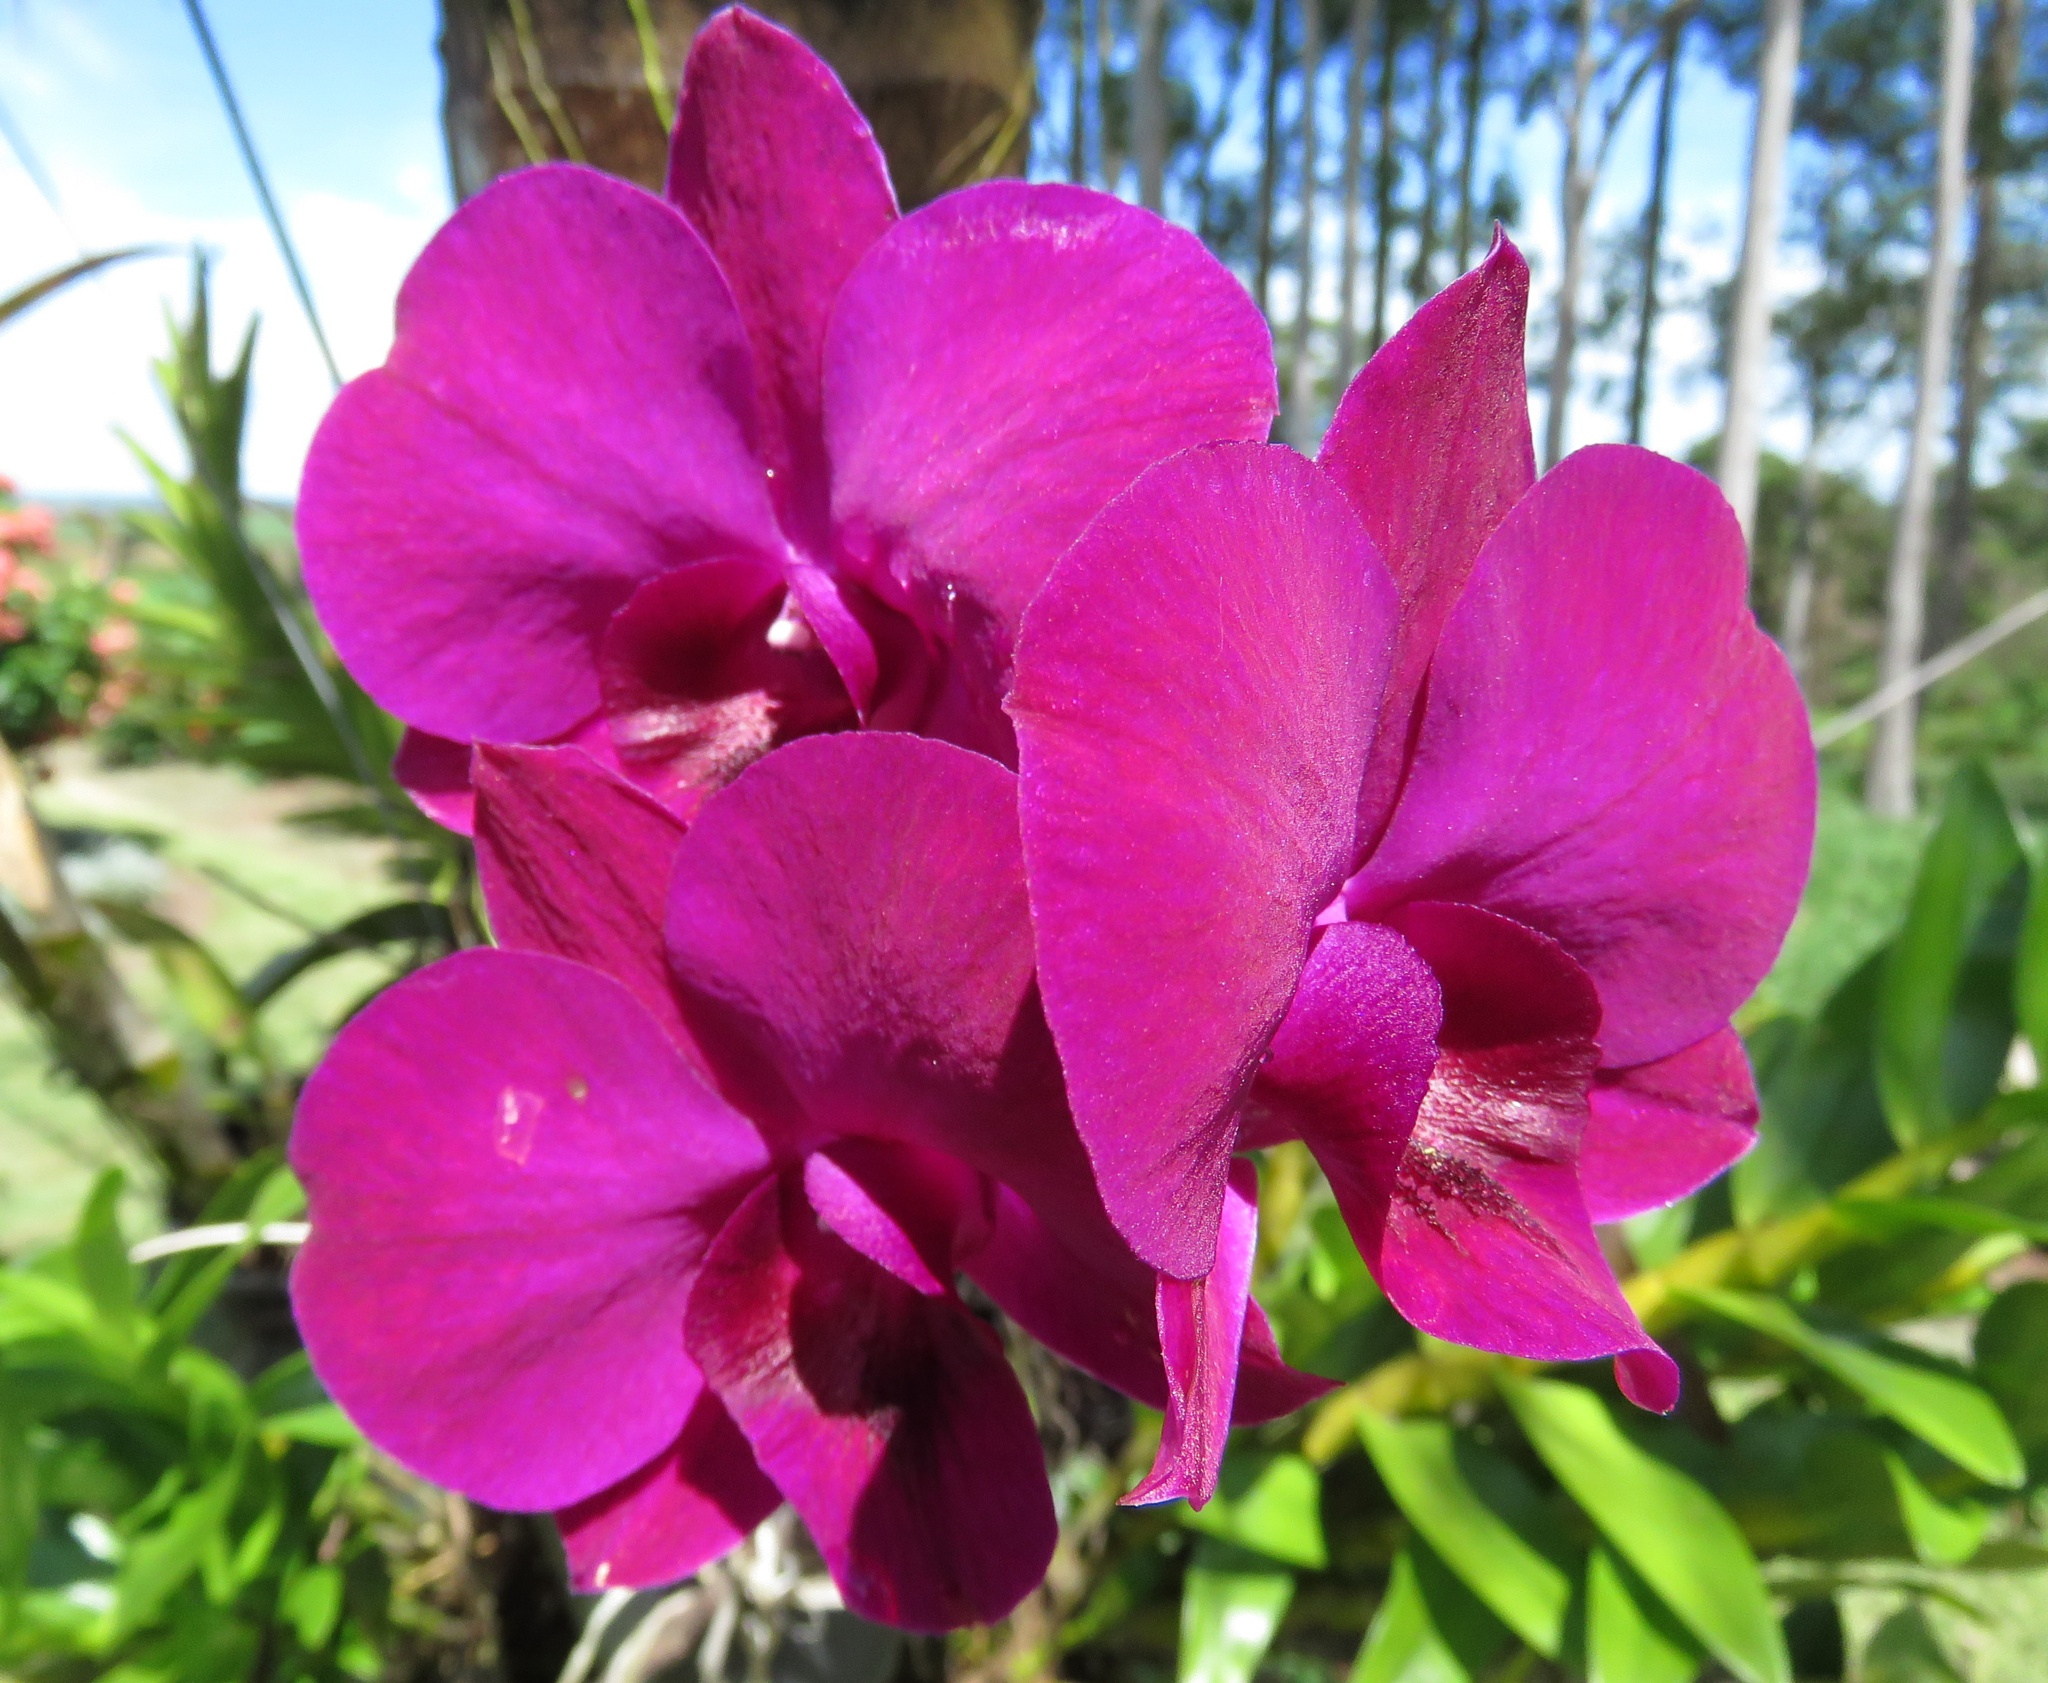 Marvelous orchid by Nestor